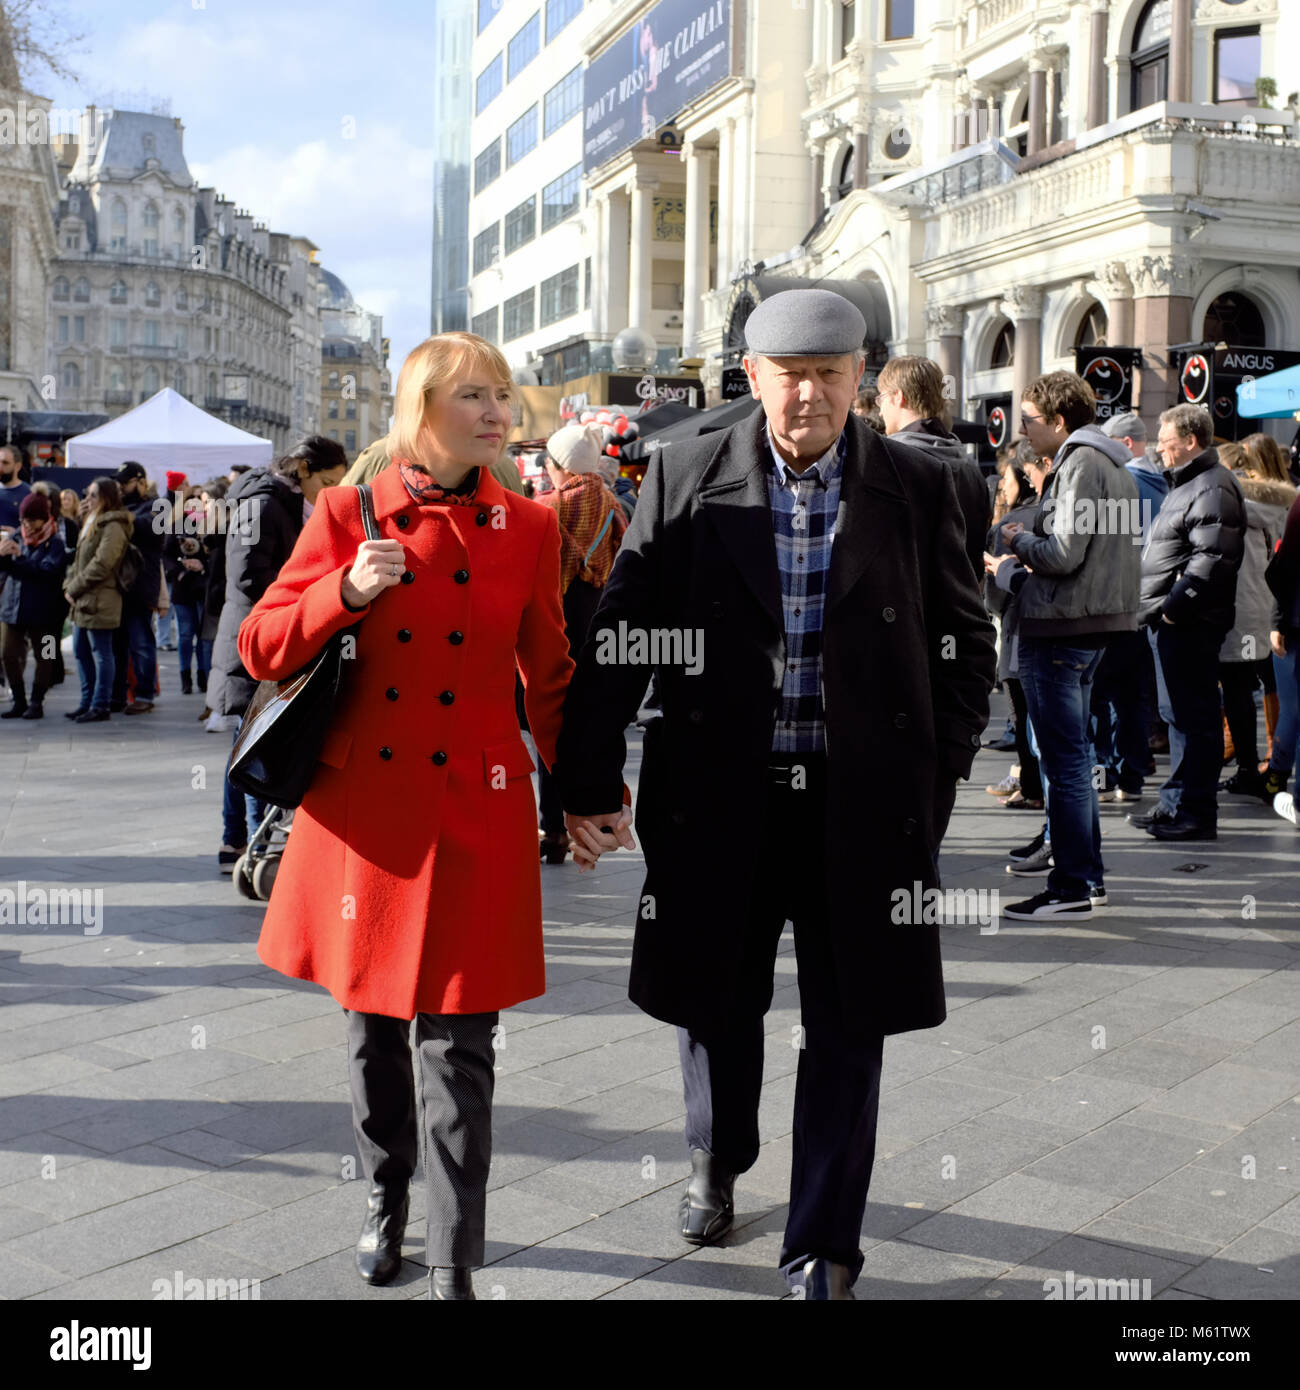 Older man holding hands with younger woman in Leicester square, London, England, UK - Stock Image